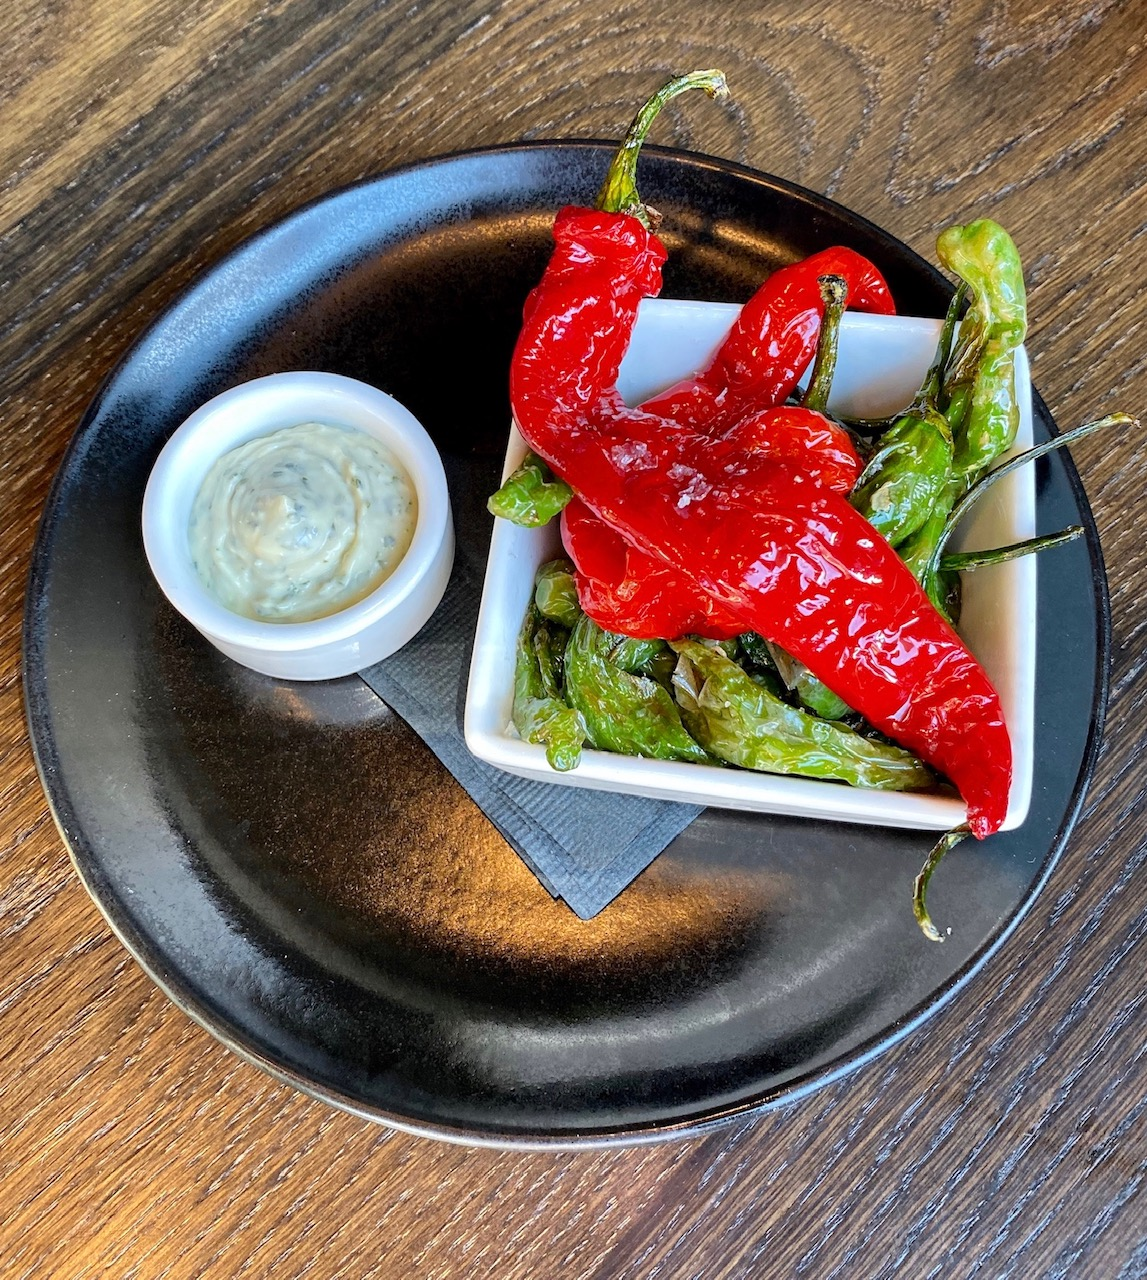 Fried Peppers at Avid Cider Co. & Kitchen. (photo by Cat Stelzer)